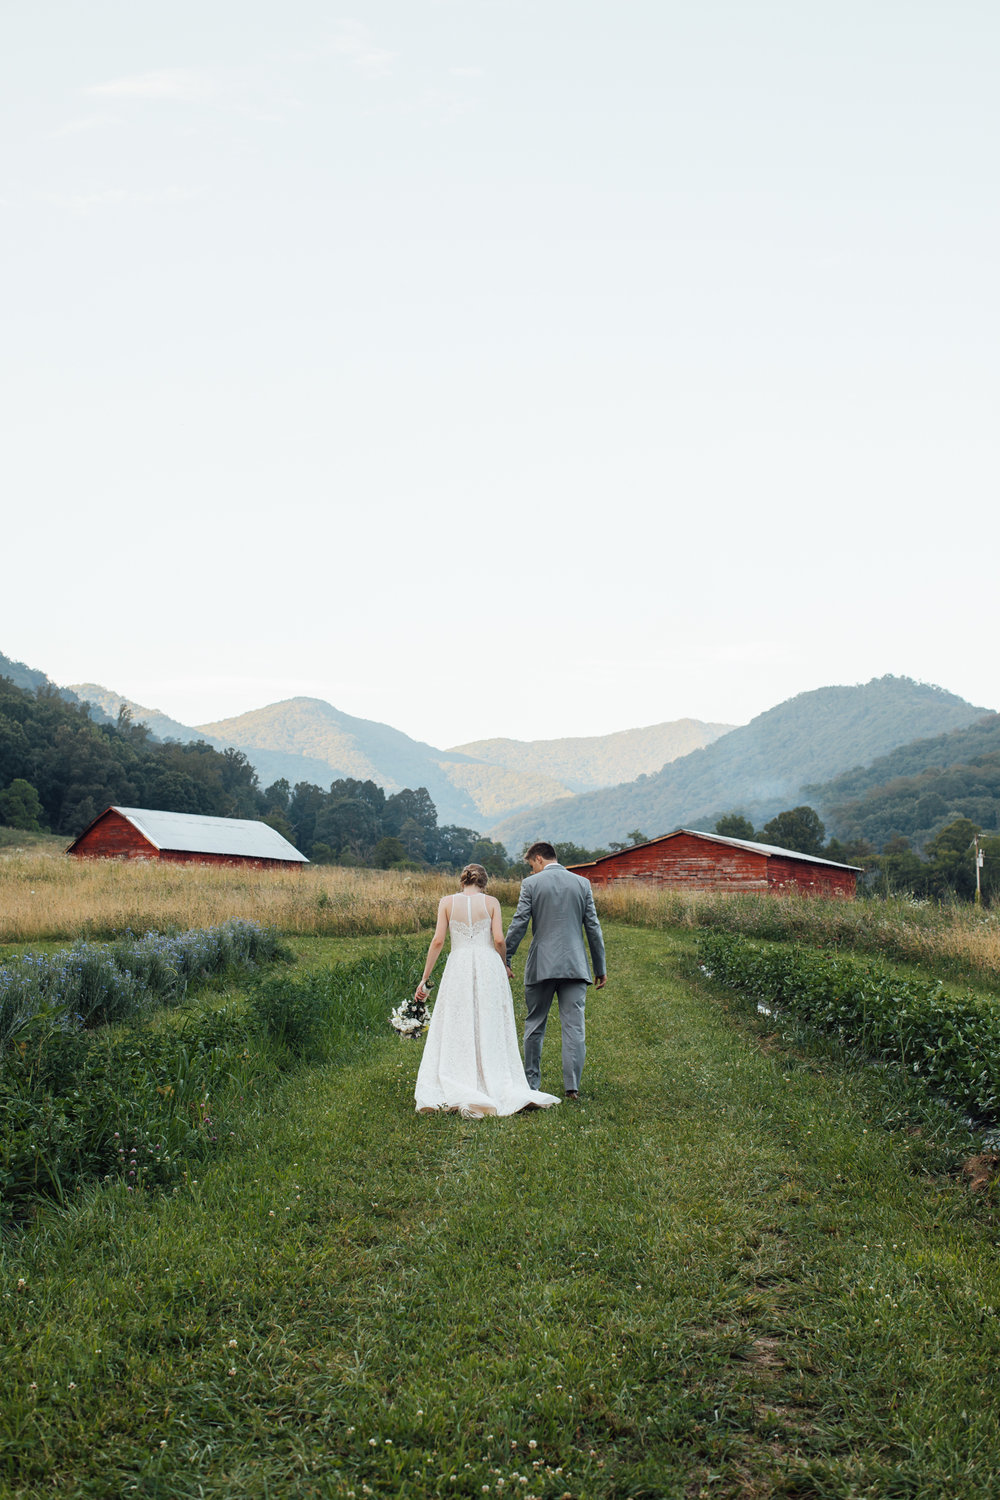 asheville-wedding-photographers-TheBasilicaofSt.Lawrence-IvyCreekFamilyFarm-thewarmtharoundyou (42 of 52).jpg